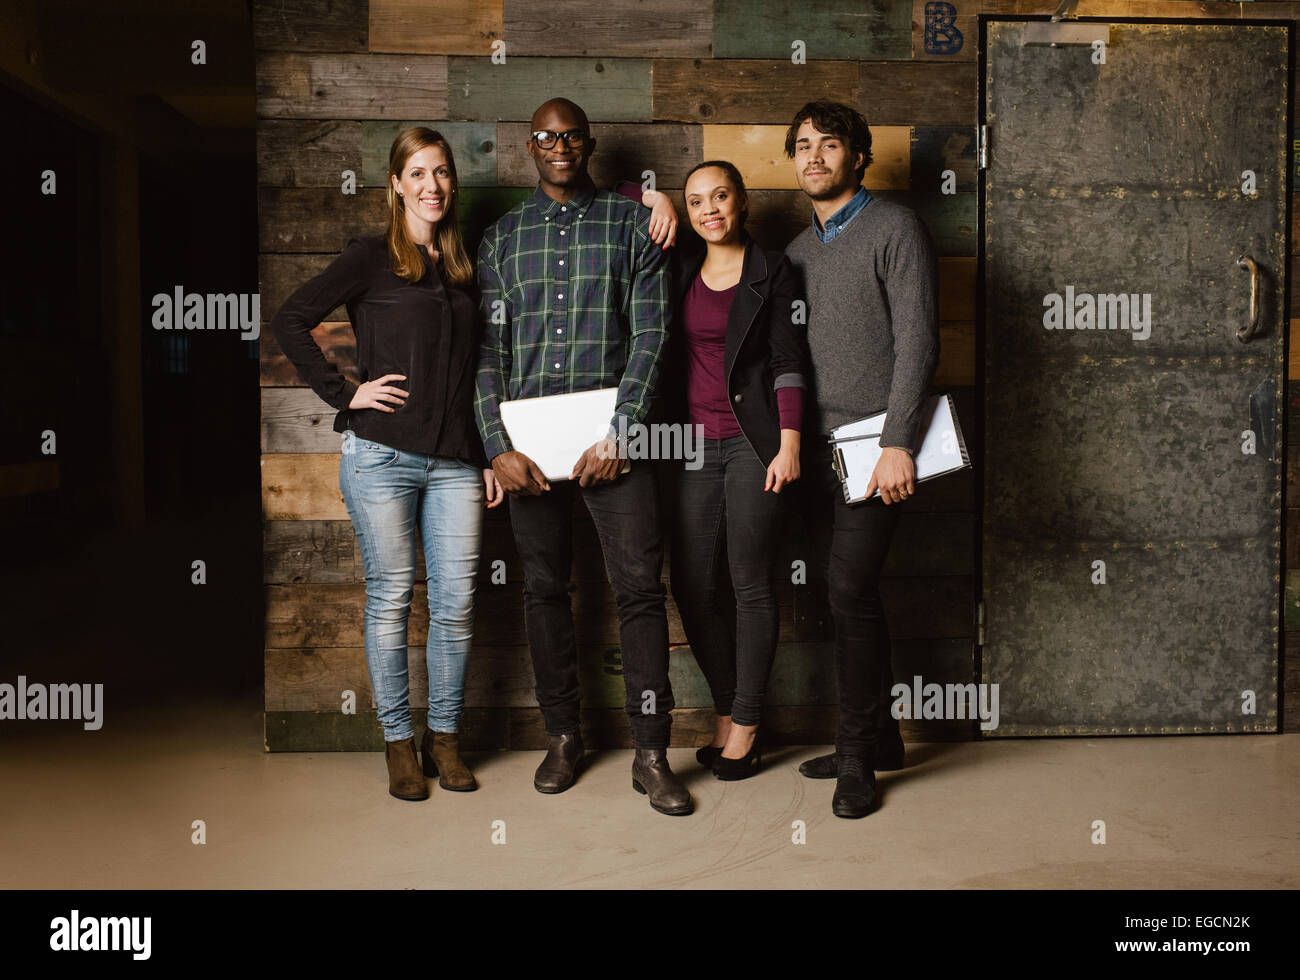 Portrait of successful business team standing together against wooden wall. Full length image of a group of diverse - Stock Image